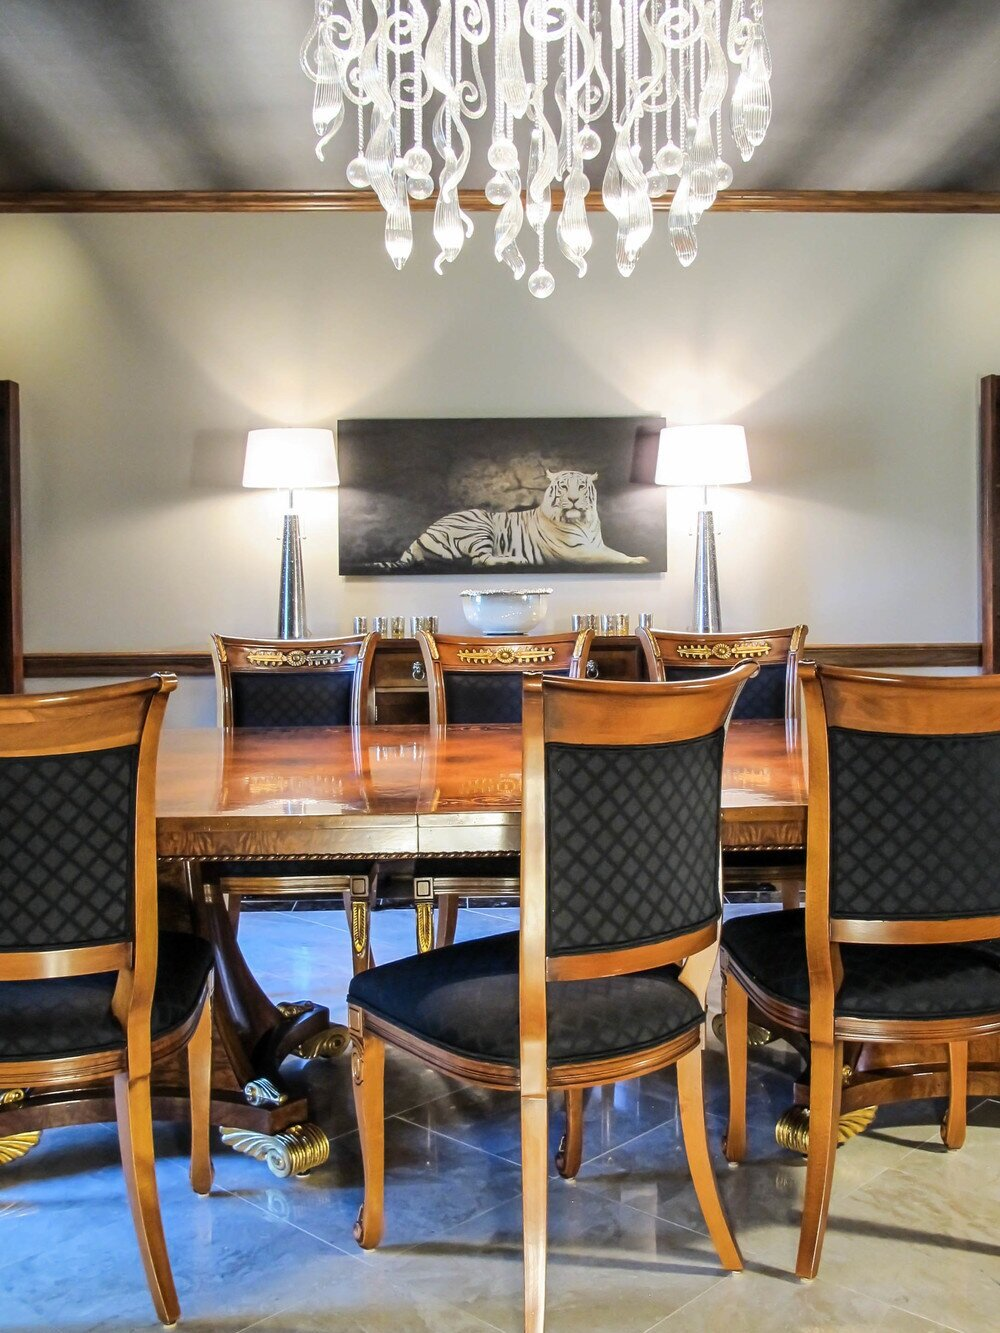 This dining room was made for drama and lengthy evening dinners. The dark, striated wallpaper on the ceiling invites guests to feel cocooned, cozy and to pour that second glass.